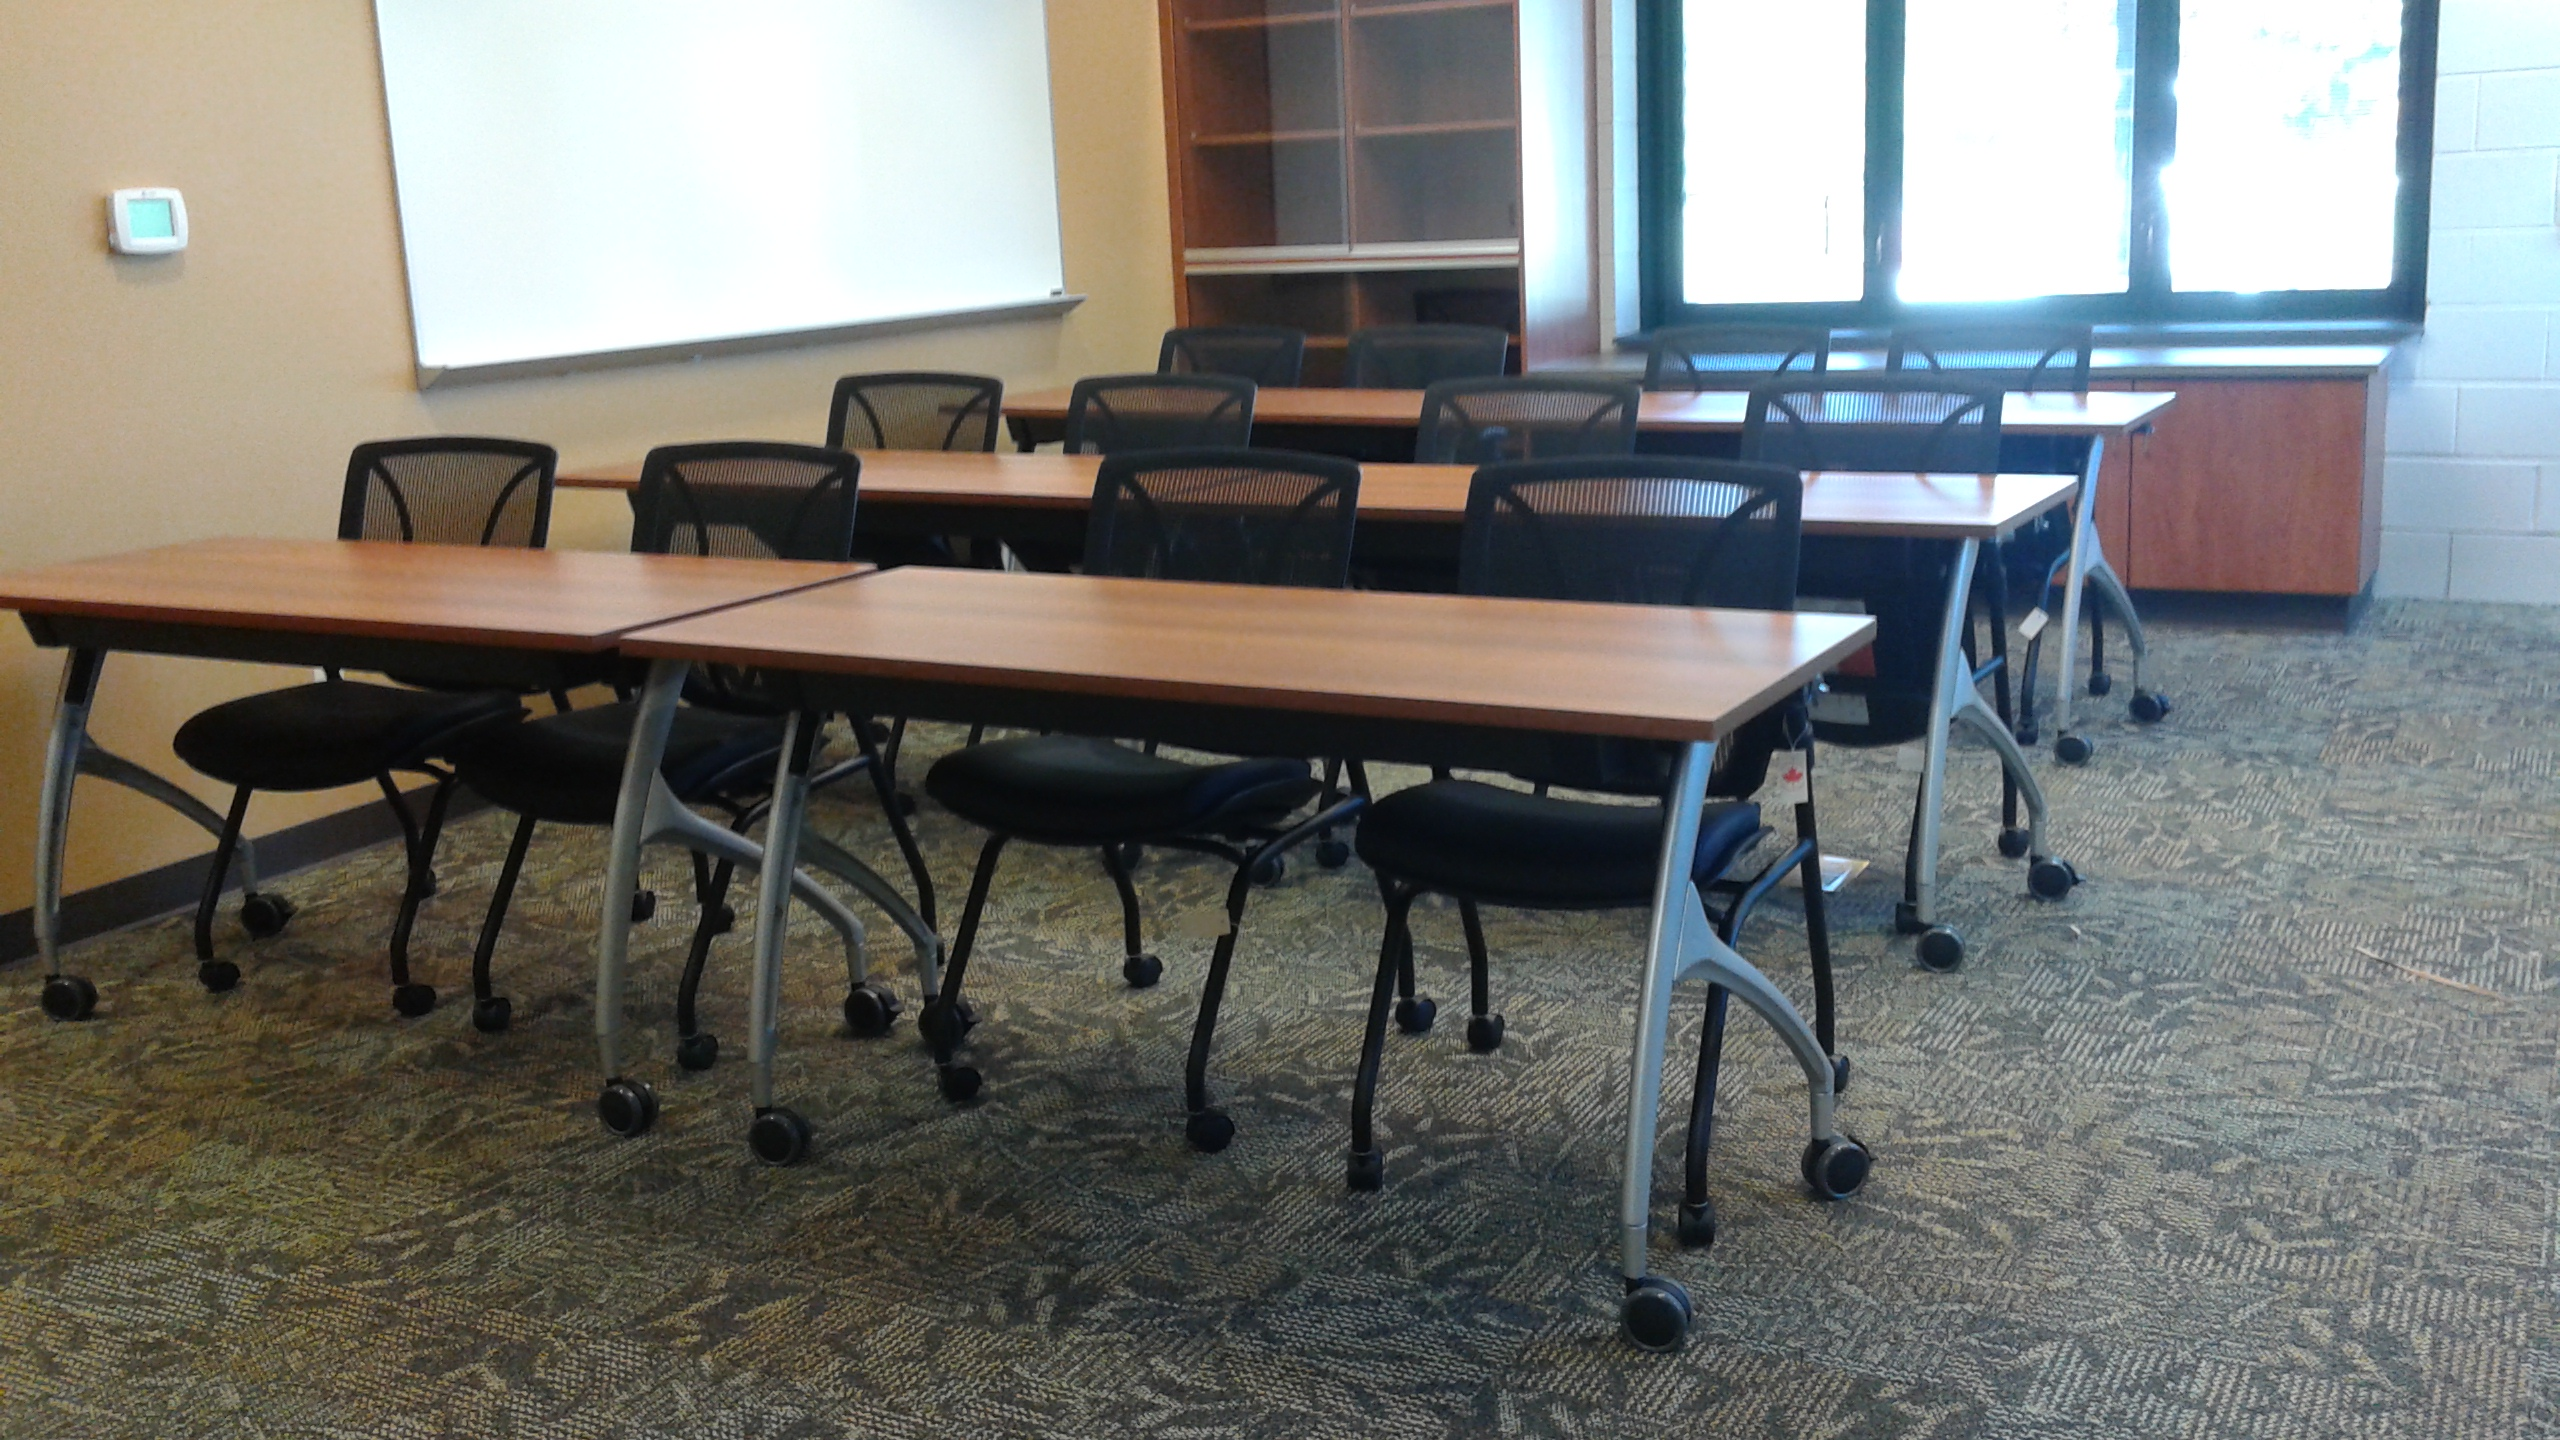 63 Used Office Furniture Voorhees Nj Item Voorhees Fire Desks Chairs For The New Station